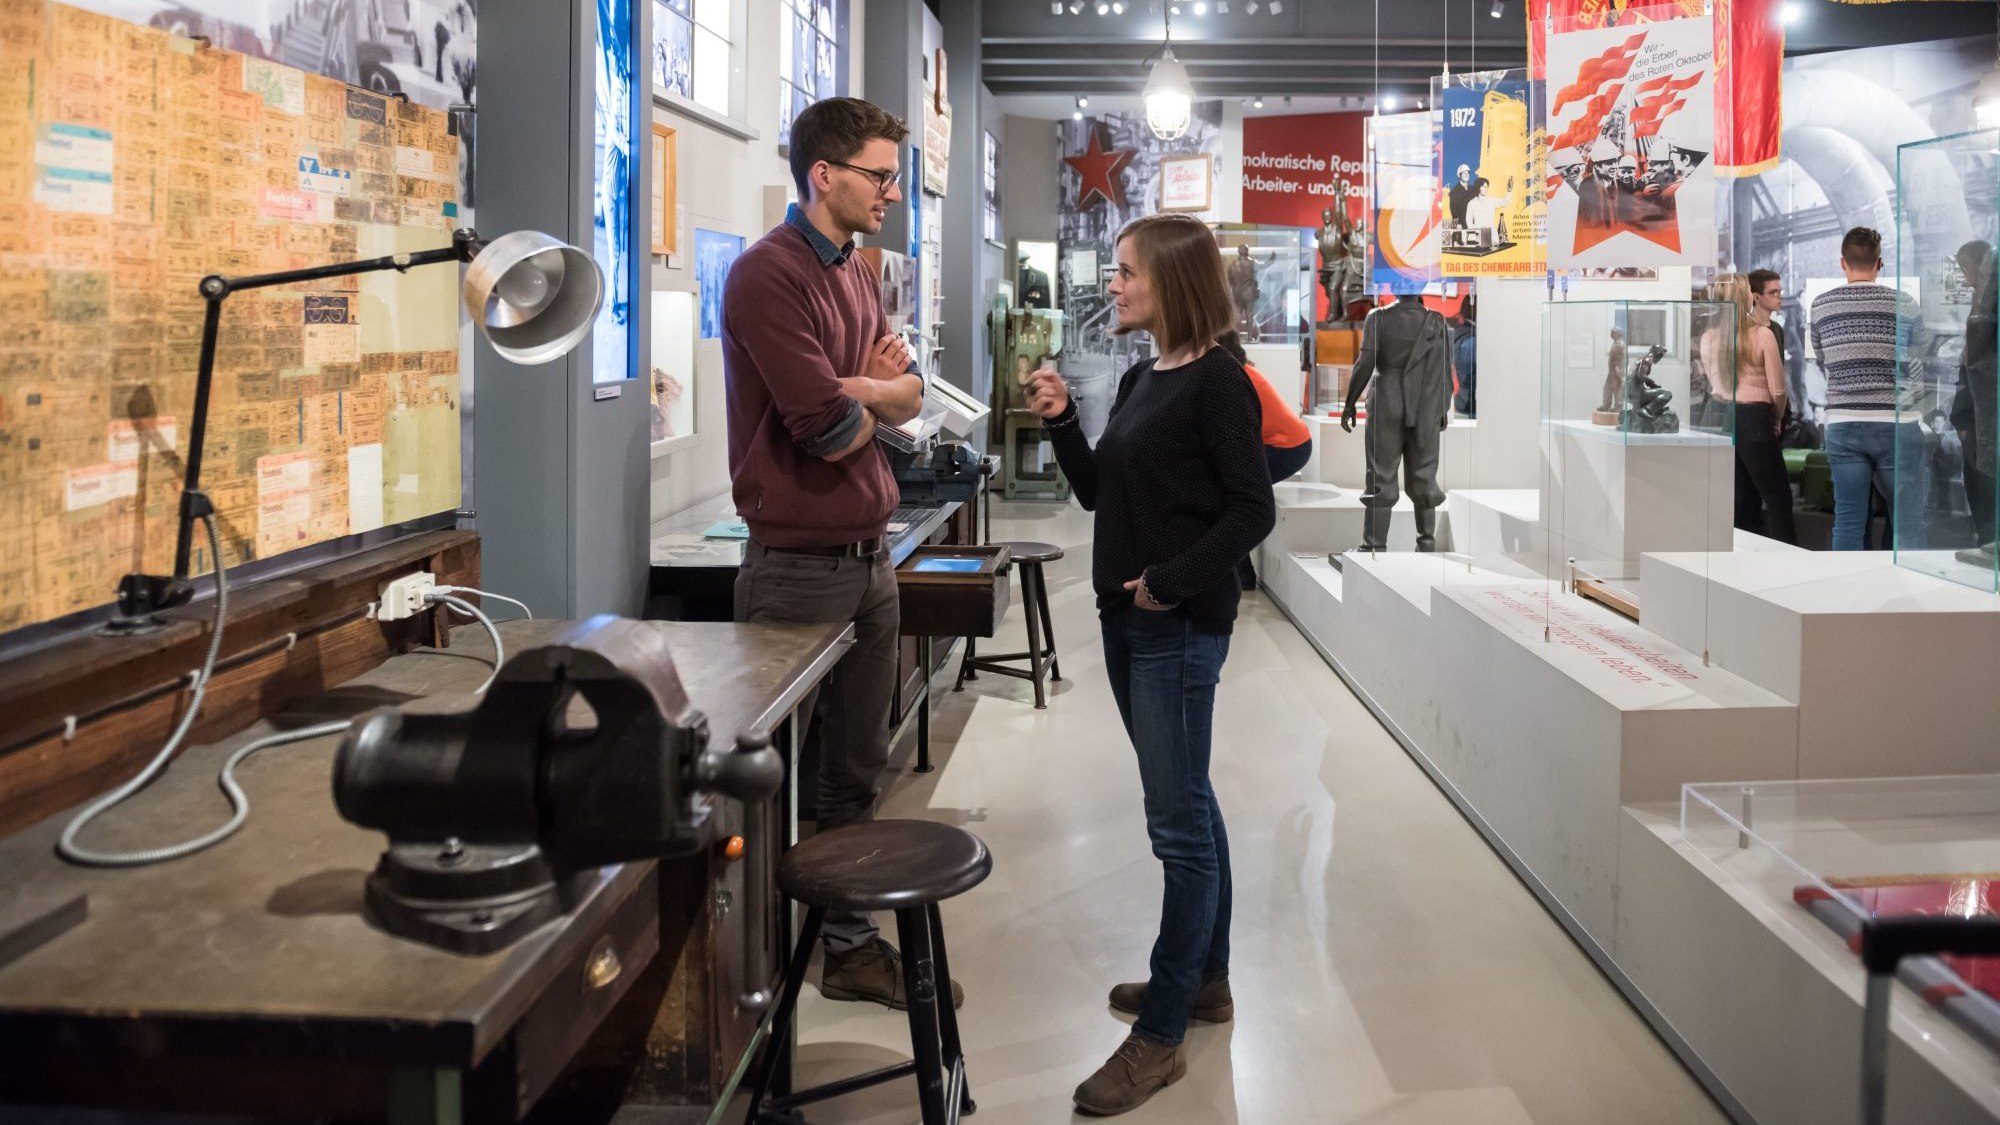 A young woman and a young man stand in the middle of an exhibition room of the Museum in the Kulturbrauerei.